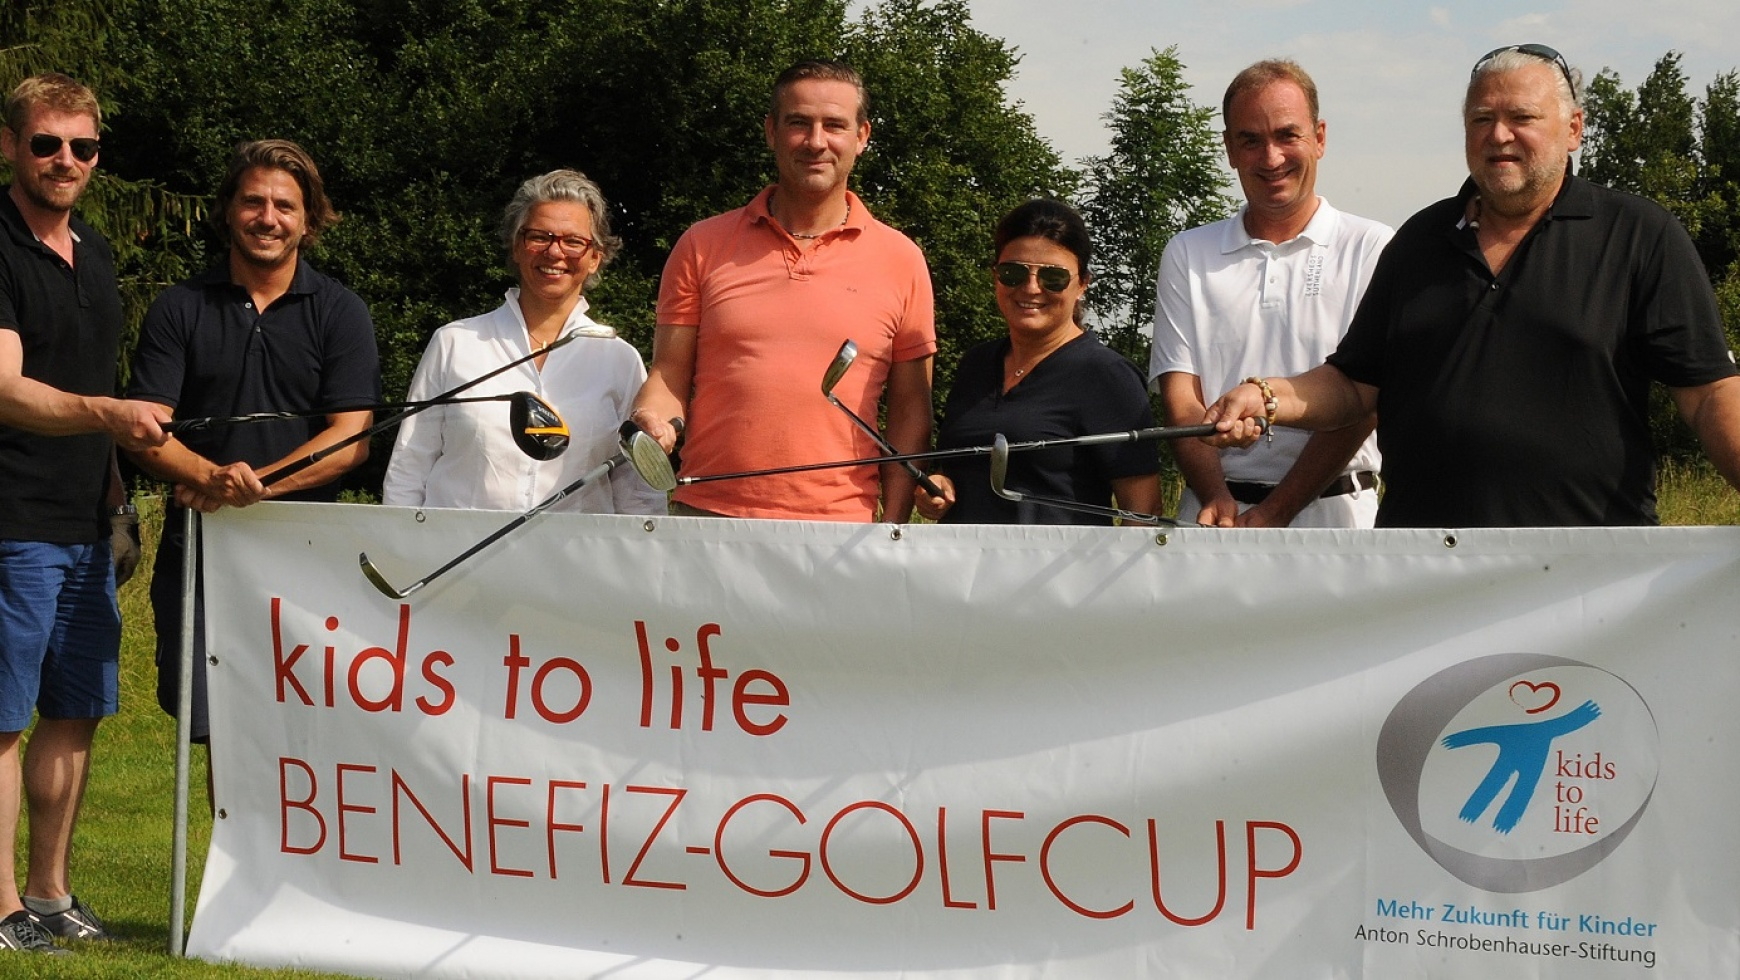 kids to life Charity-Golfcup und Benefizabend